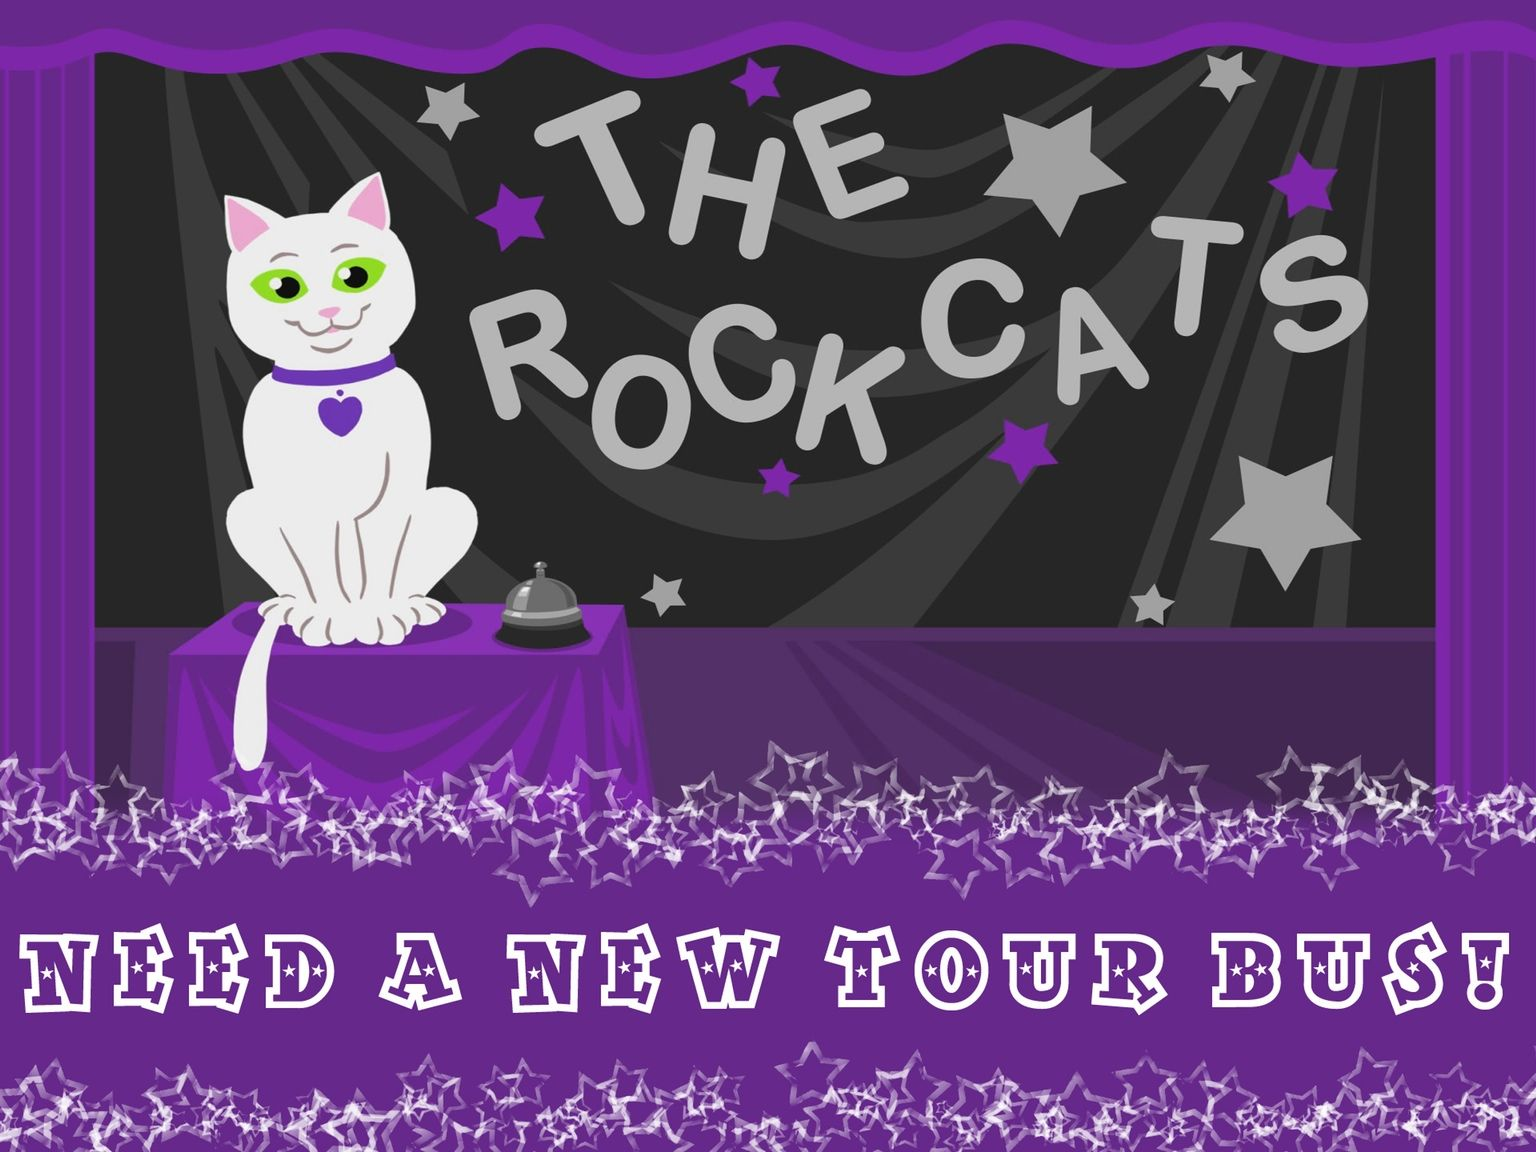 The Acro Cats Mobile Foster And Kitty Tour Bus Foster Cat Kitty Cats